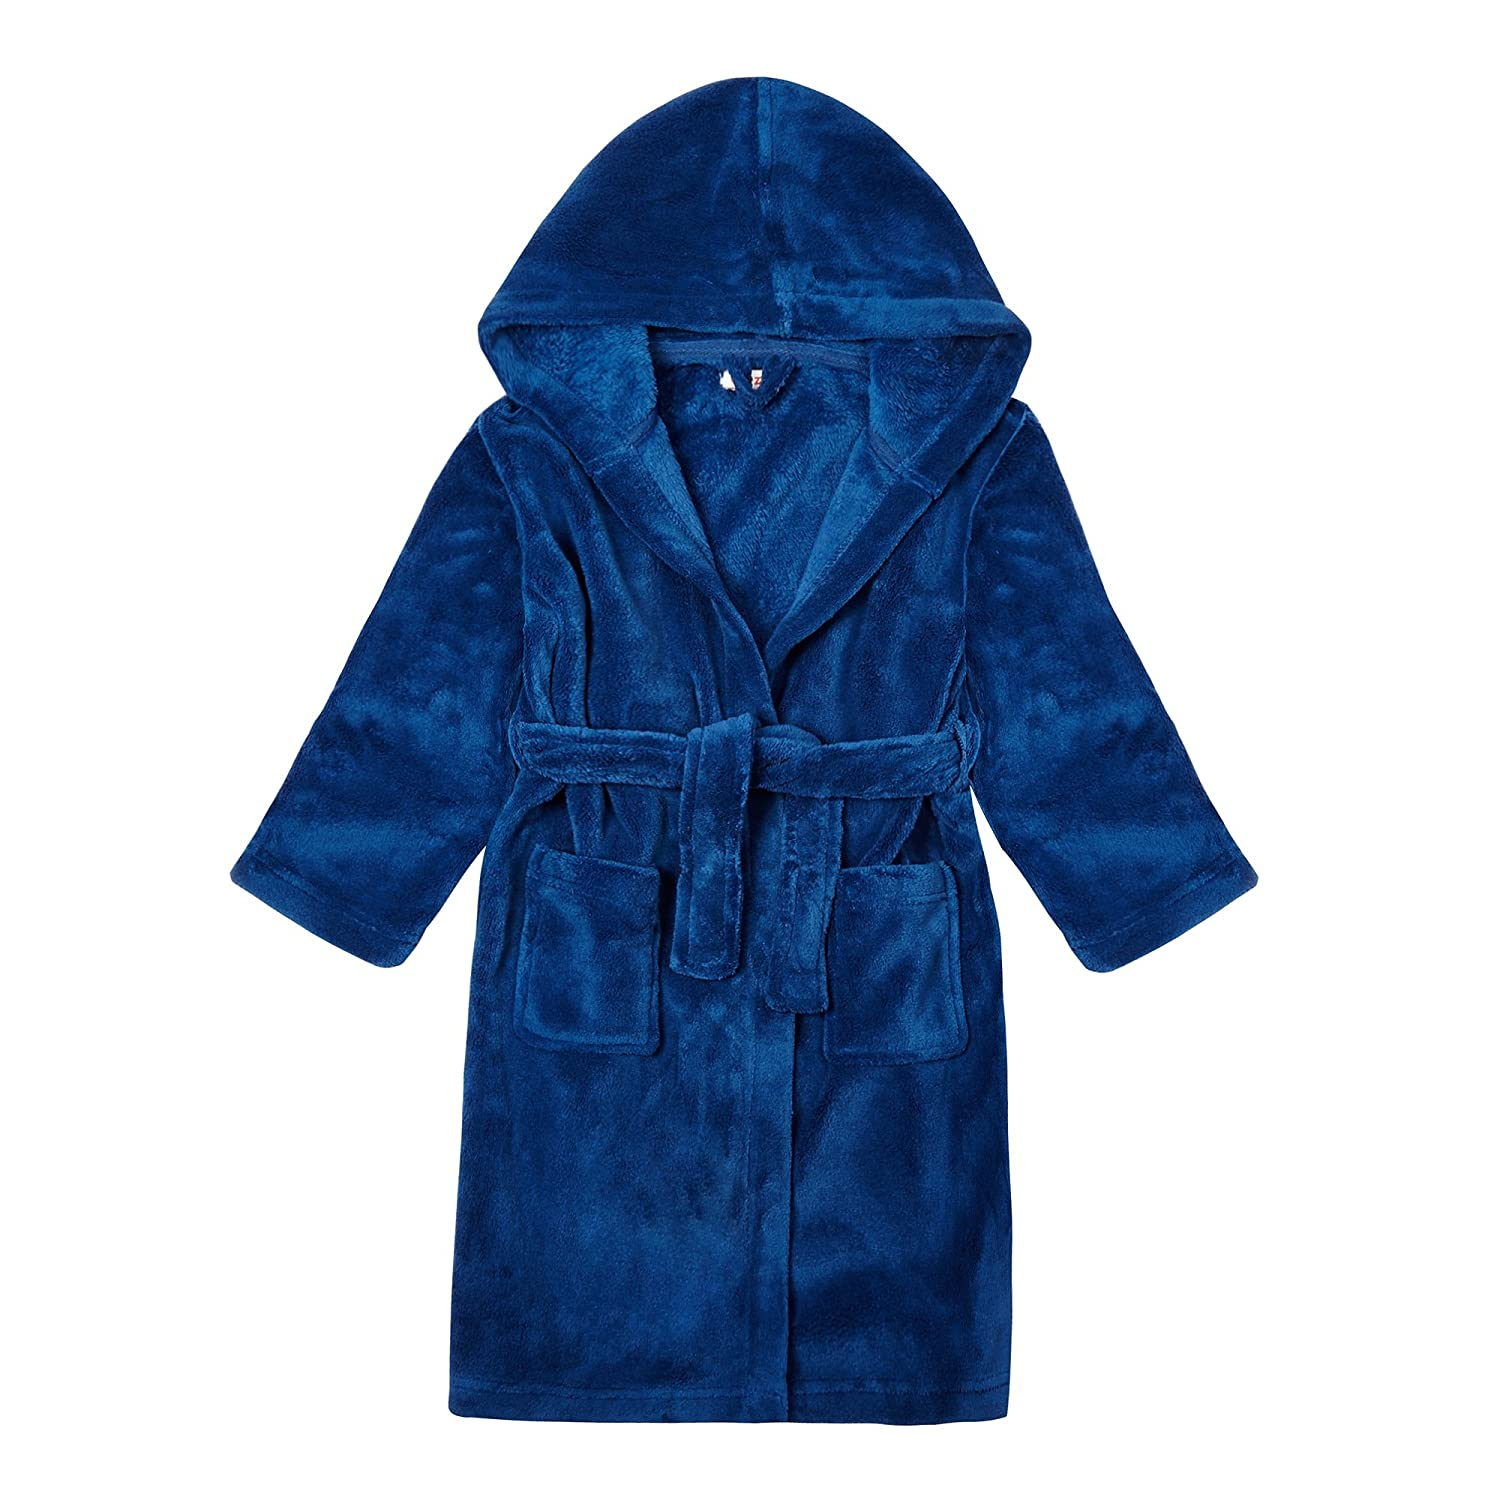 Kids Boys' Dressing Gown Age 1-14 Years, Blue bluezoo